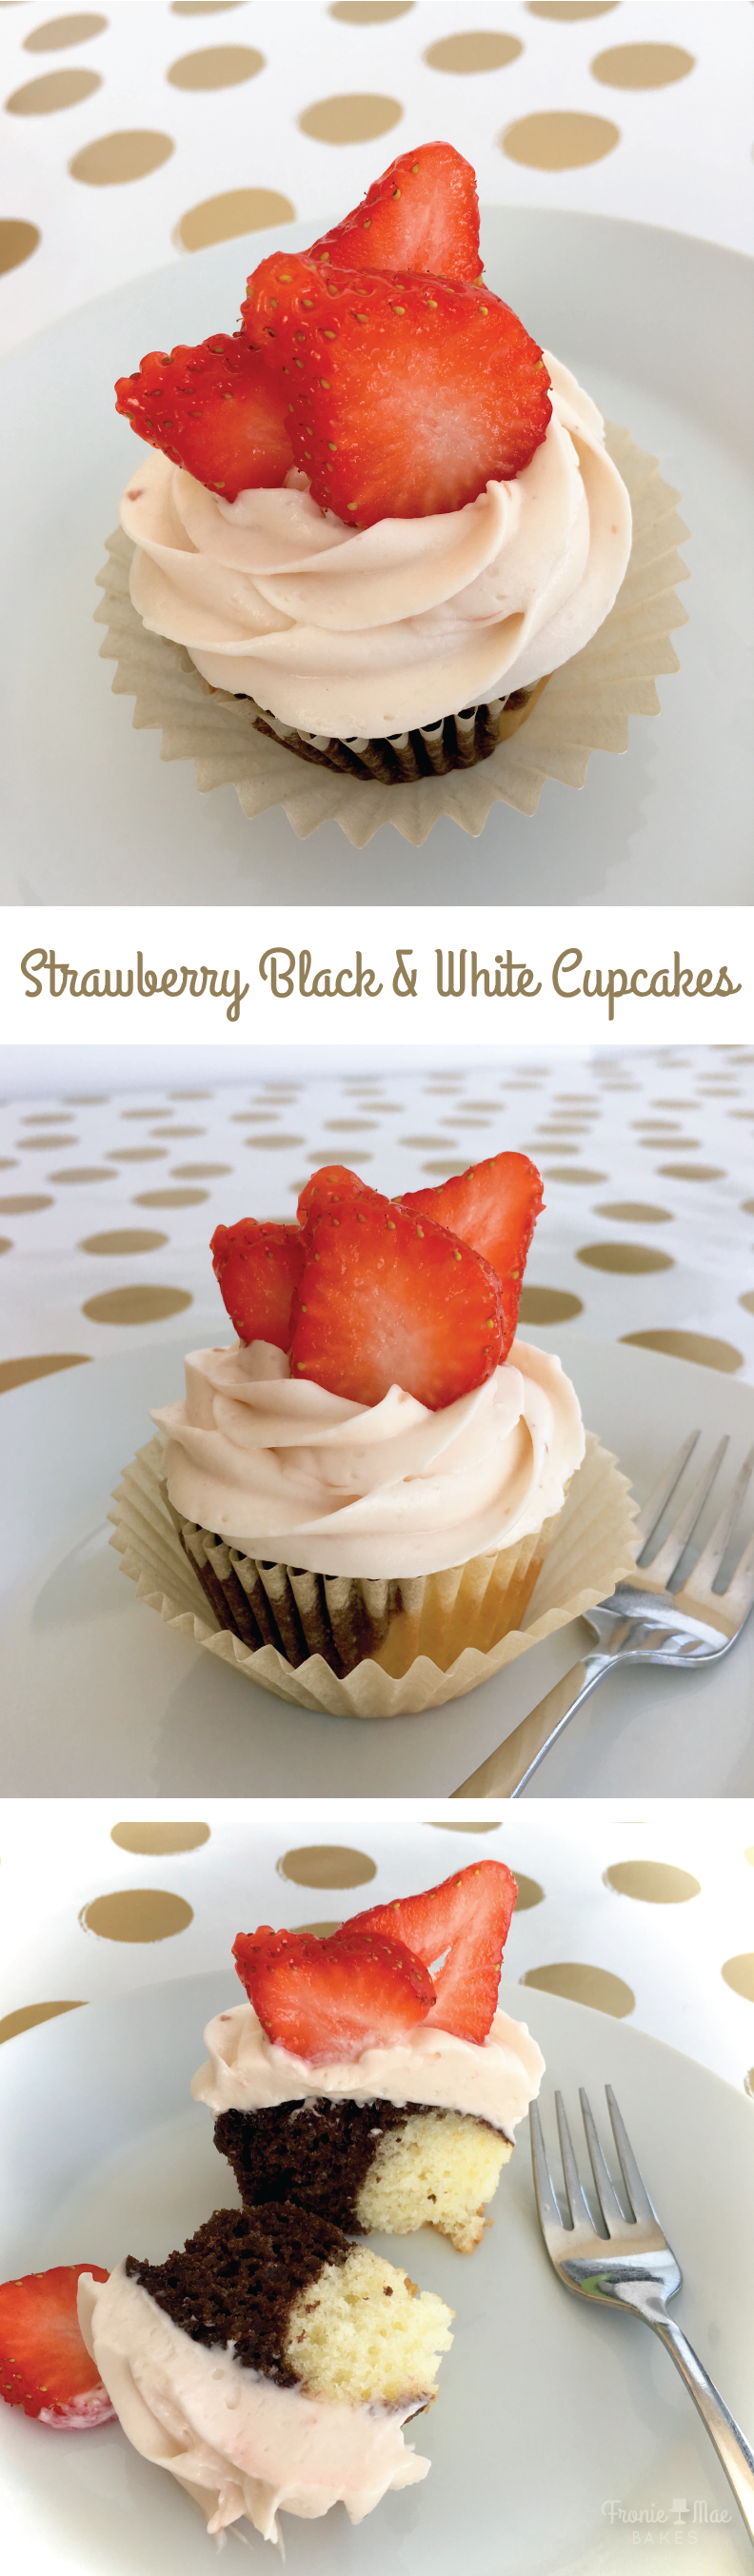 Strawberry Cream Black and White Cupcakes by Fronie Mae Bakes